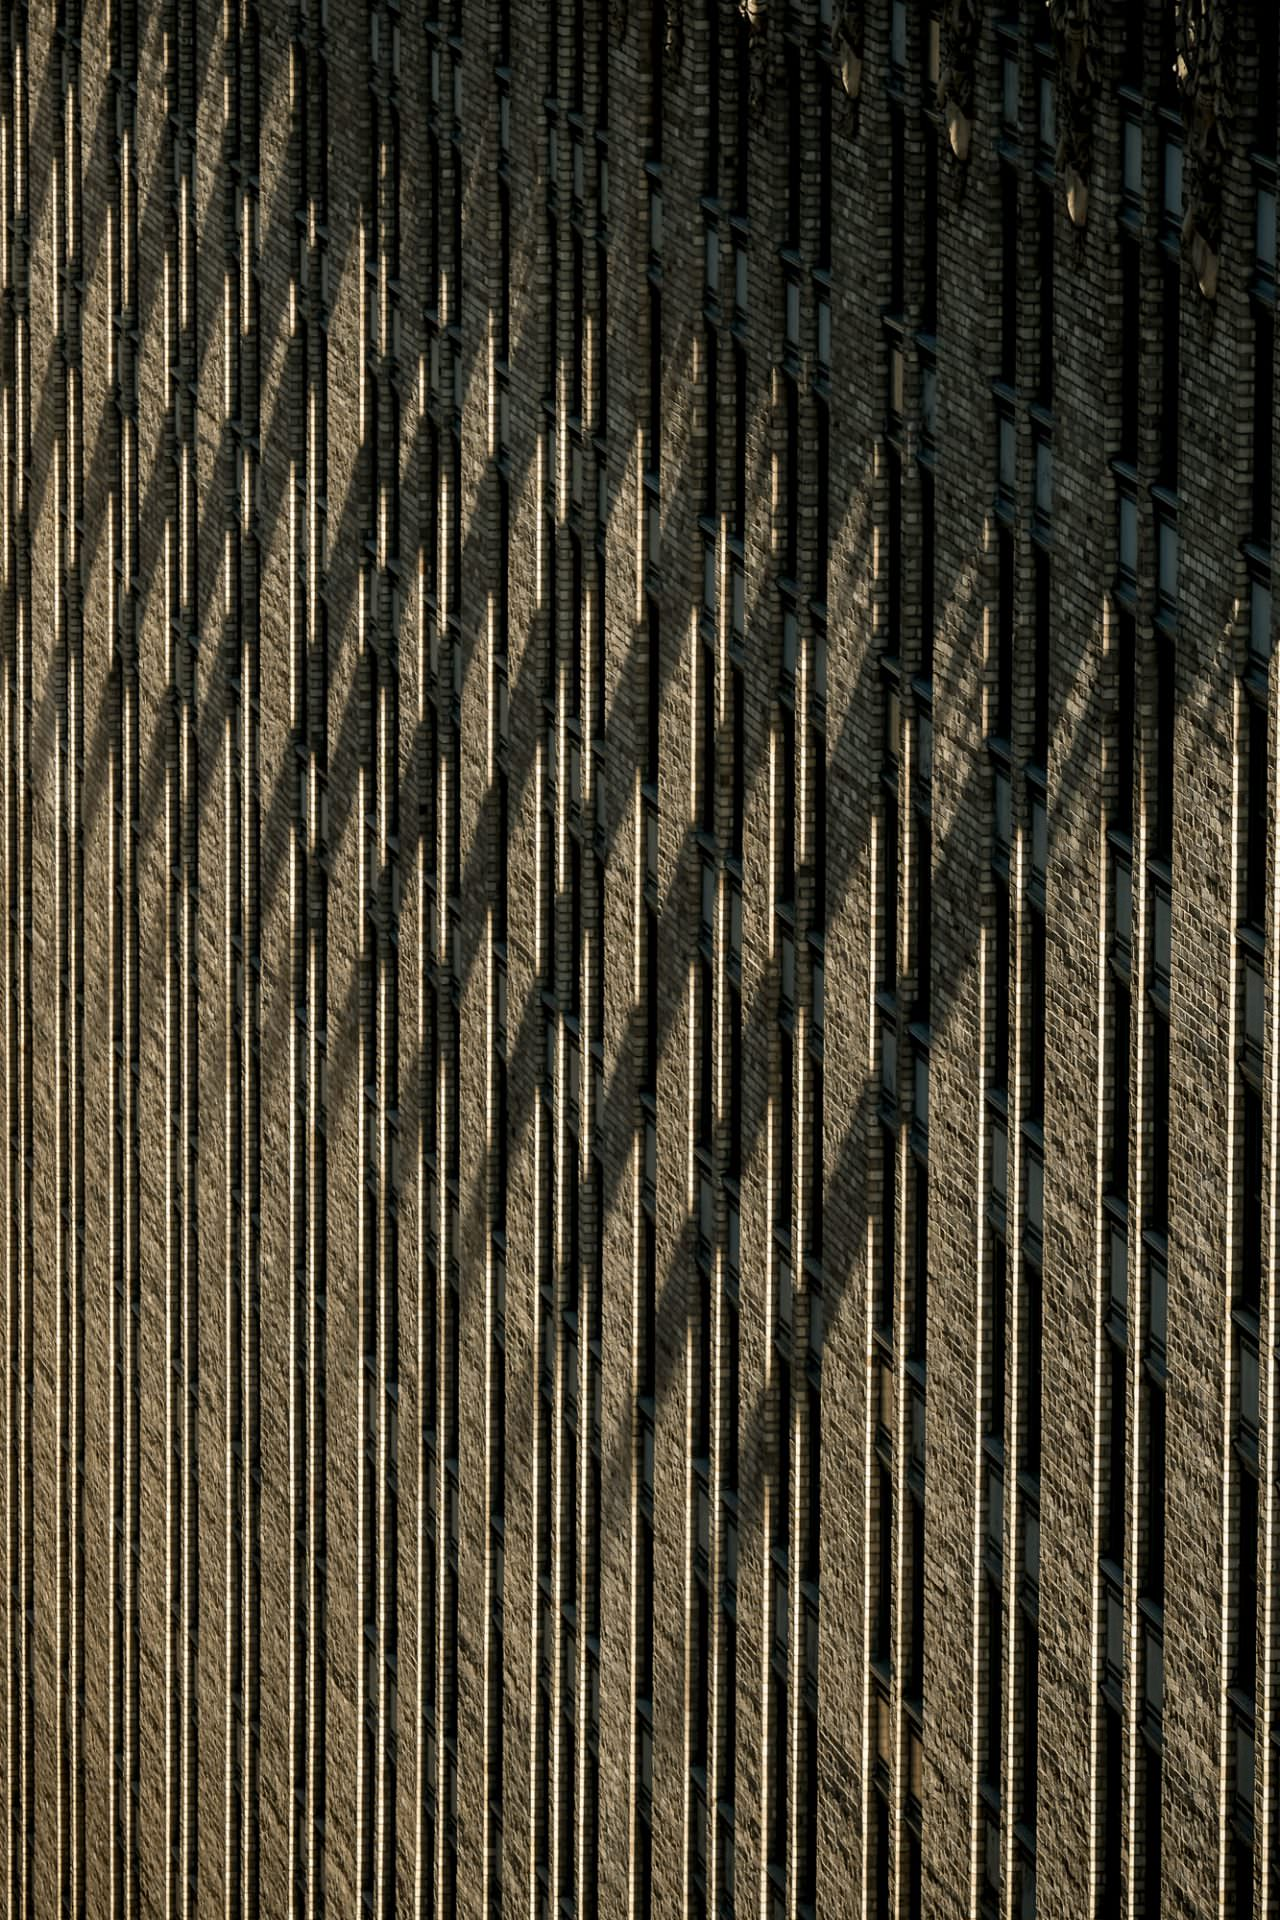 Shadow on building in New York City